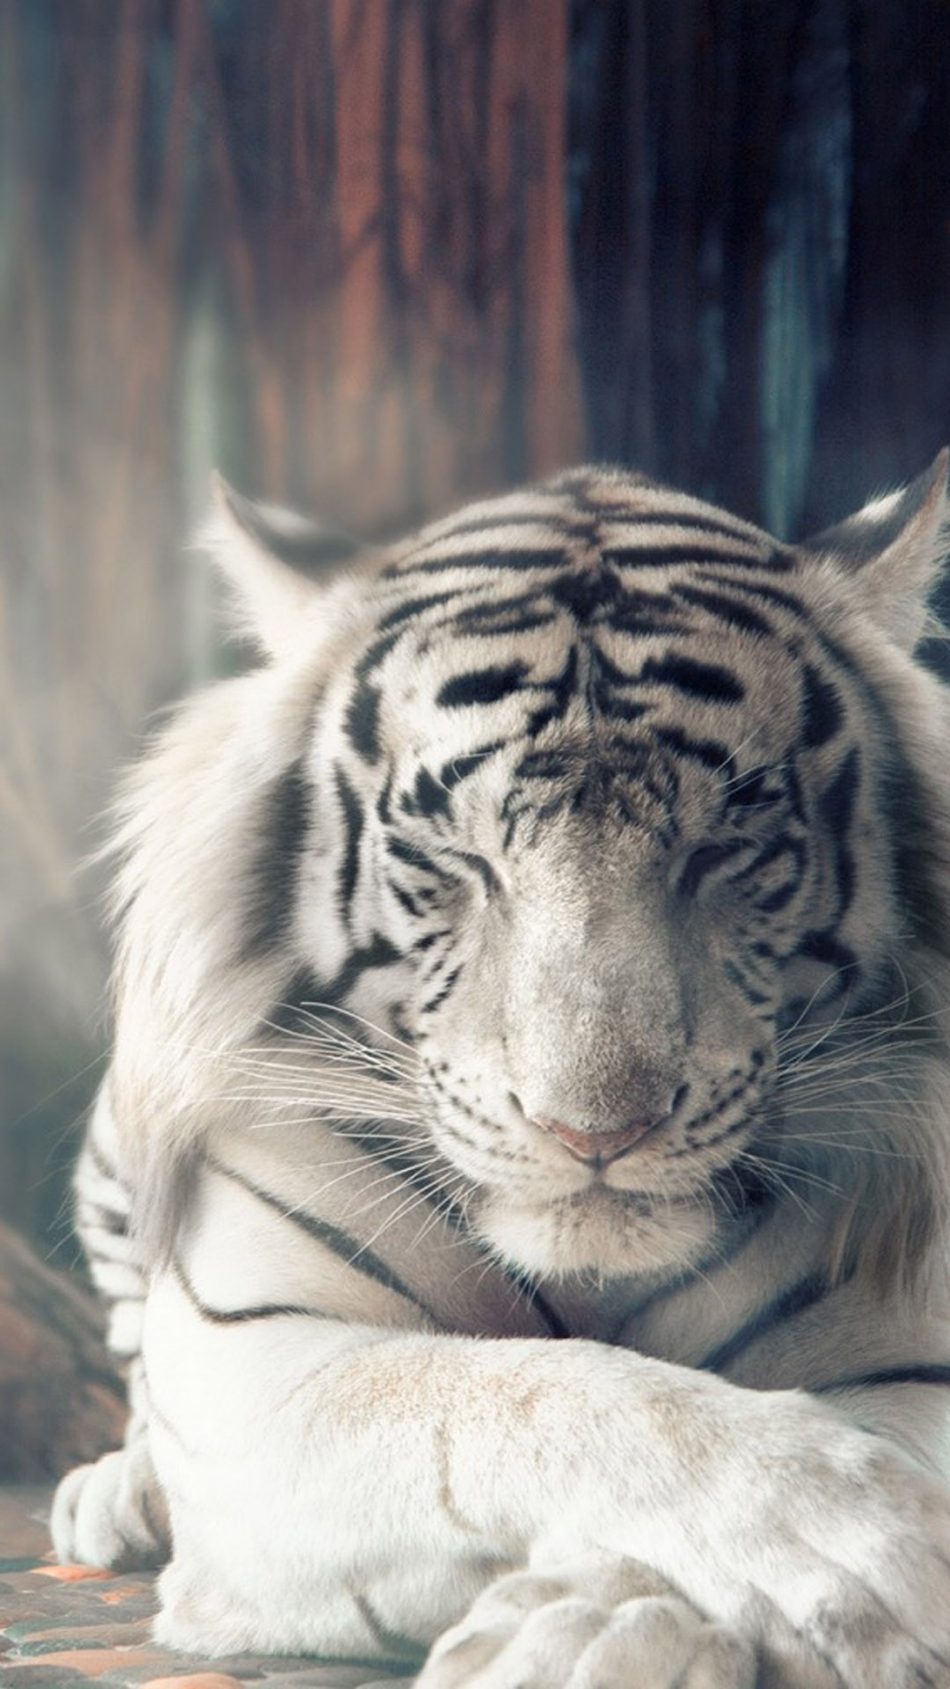 White Tiger Autumn Sunlight HD Mobile Wallpaper